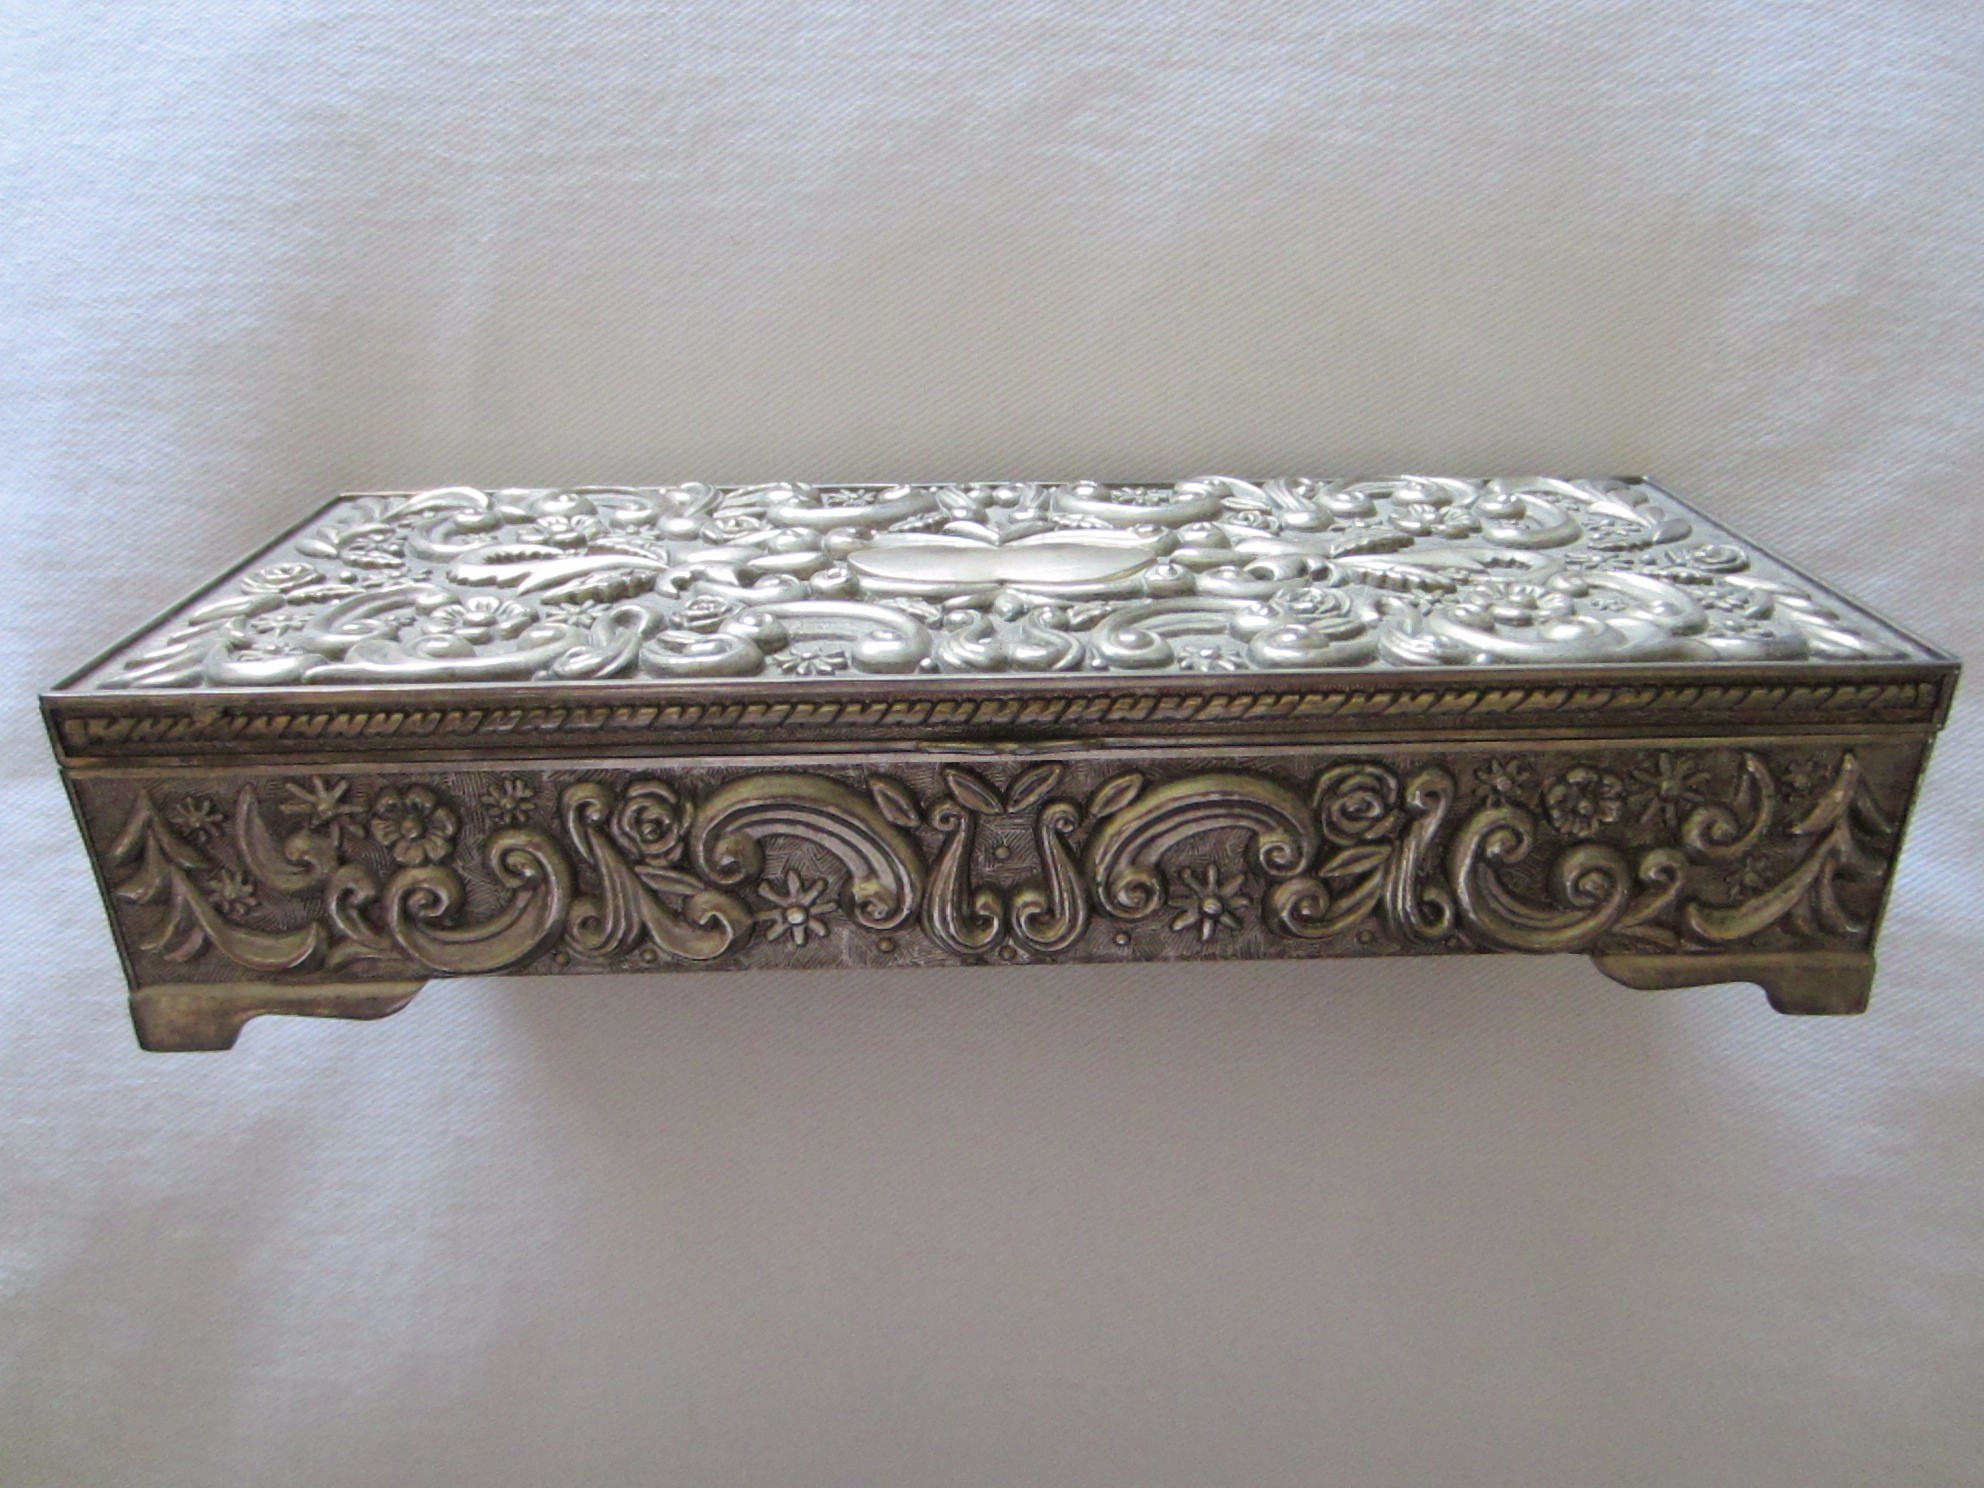 Antiques Com Classifieds Antiques Antique And Vintage Jewelry Antique Jewelry Boxes For Sale Catalog 9